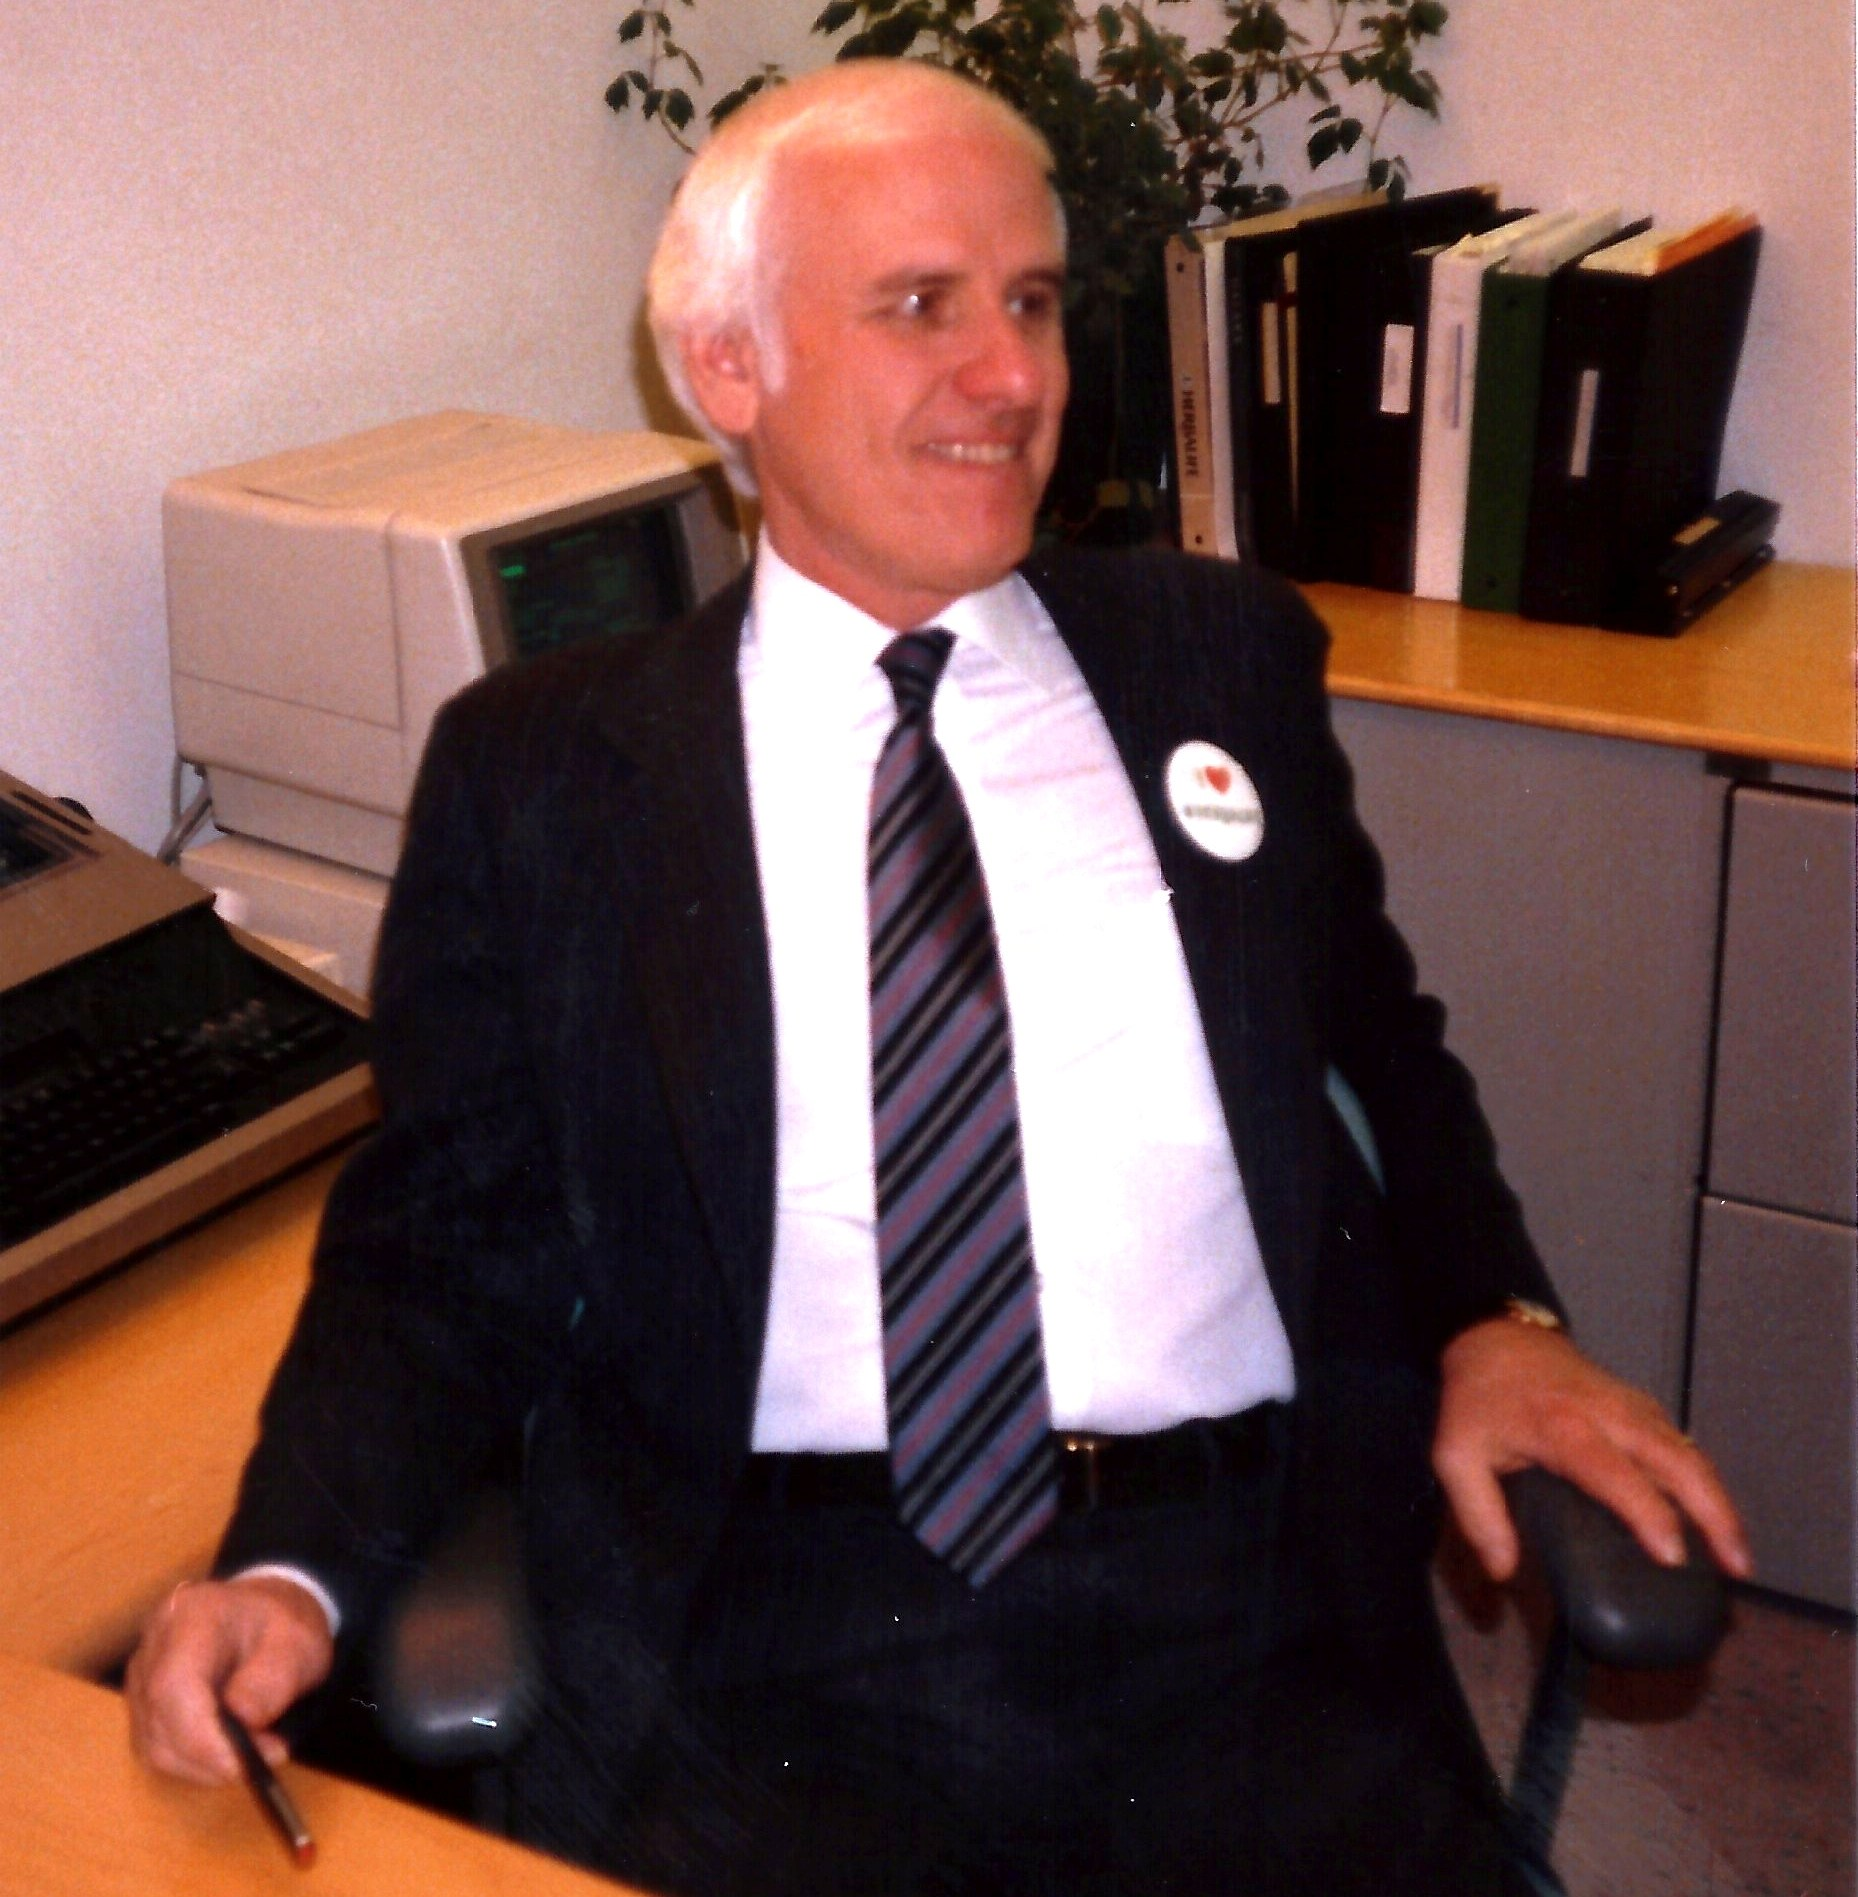 Jim Rohn by Paul Hopfensperger - Herbalife HQ Los Angeles 1988